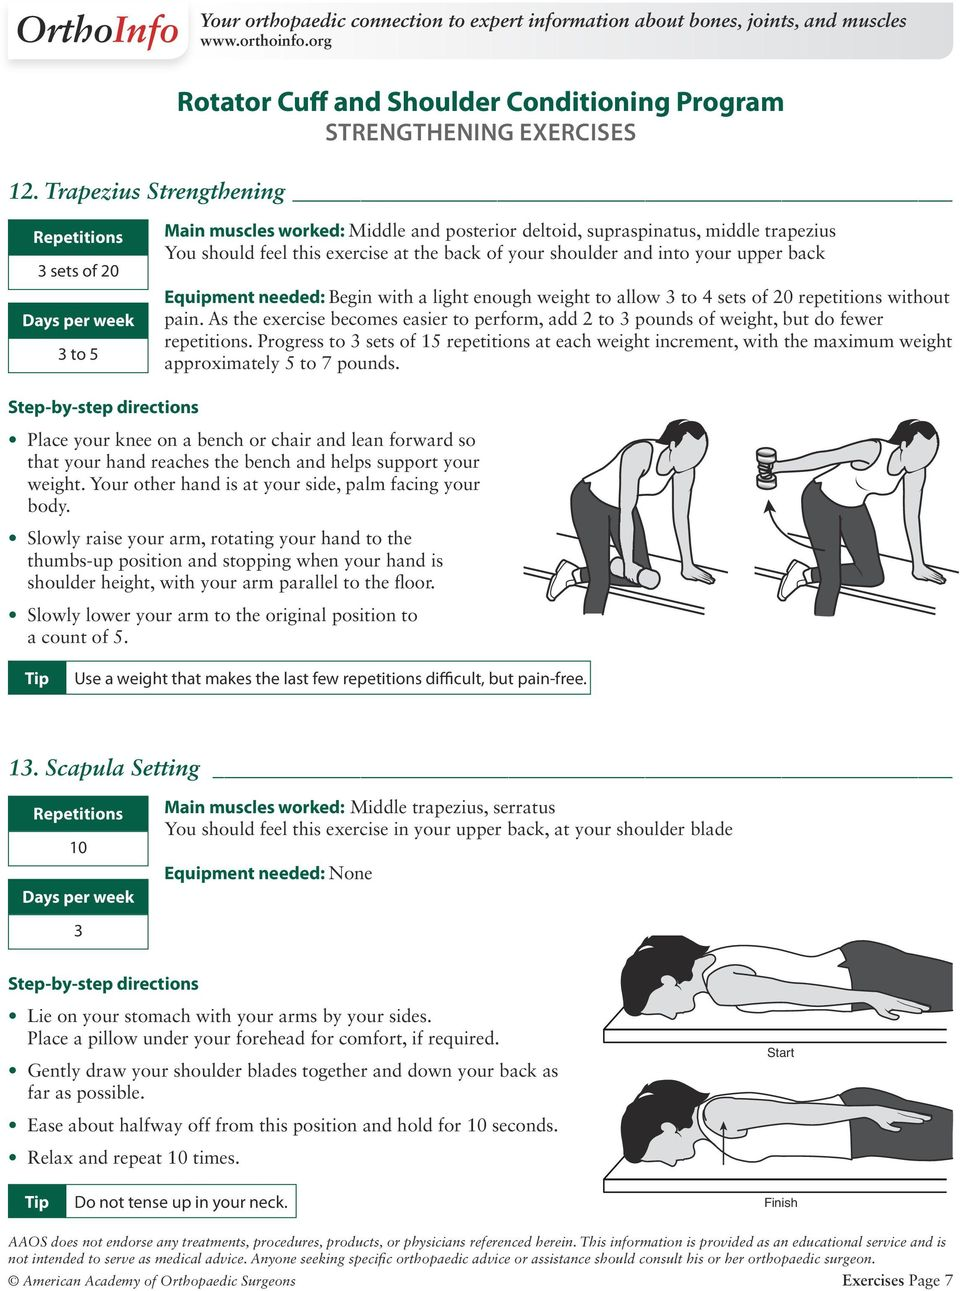 Rotator Cuff Strengthening Exercises Pdf